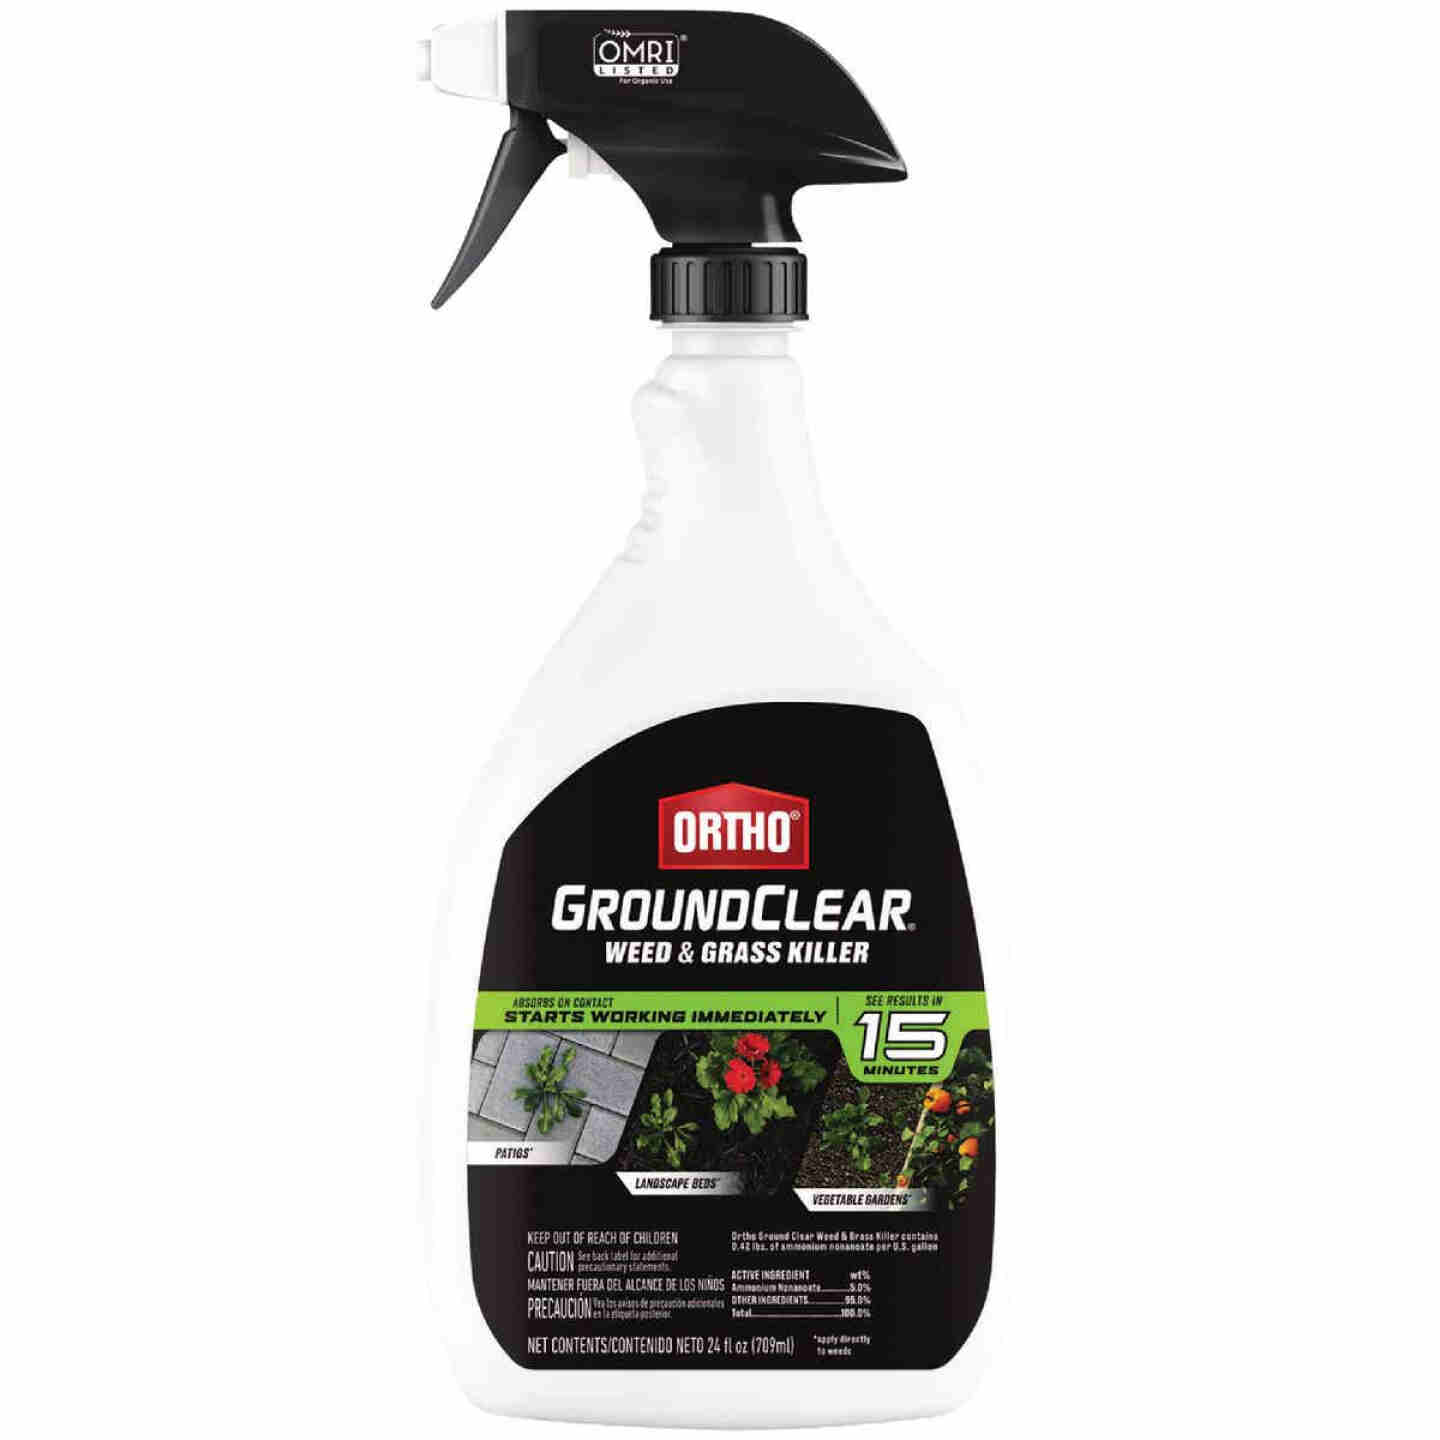 Ortho GroundClear 24 Oz. Ready To Use Trigger Spray Weed & Grass Killer Image 1